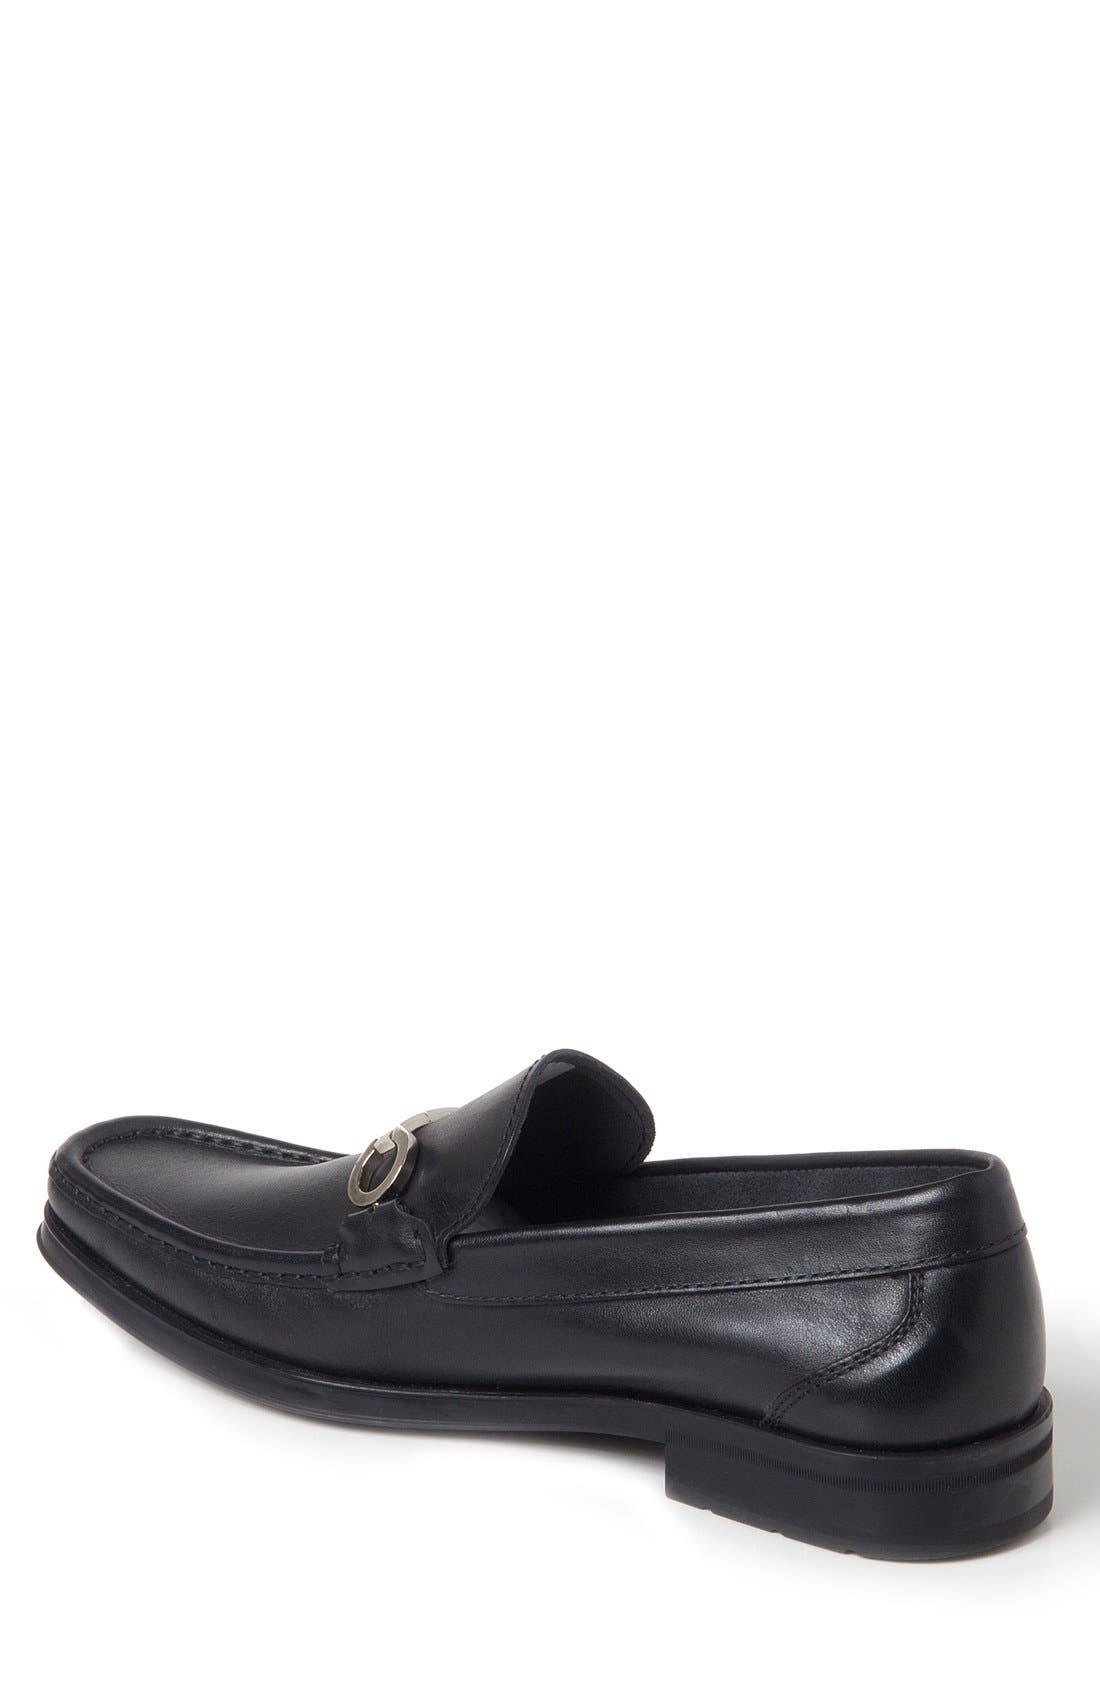 Genoa Bit Loafer,                             Alternate thumbnail 2, color,                             BLACK LEATHER